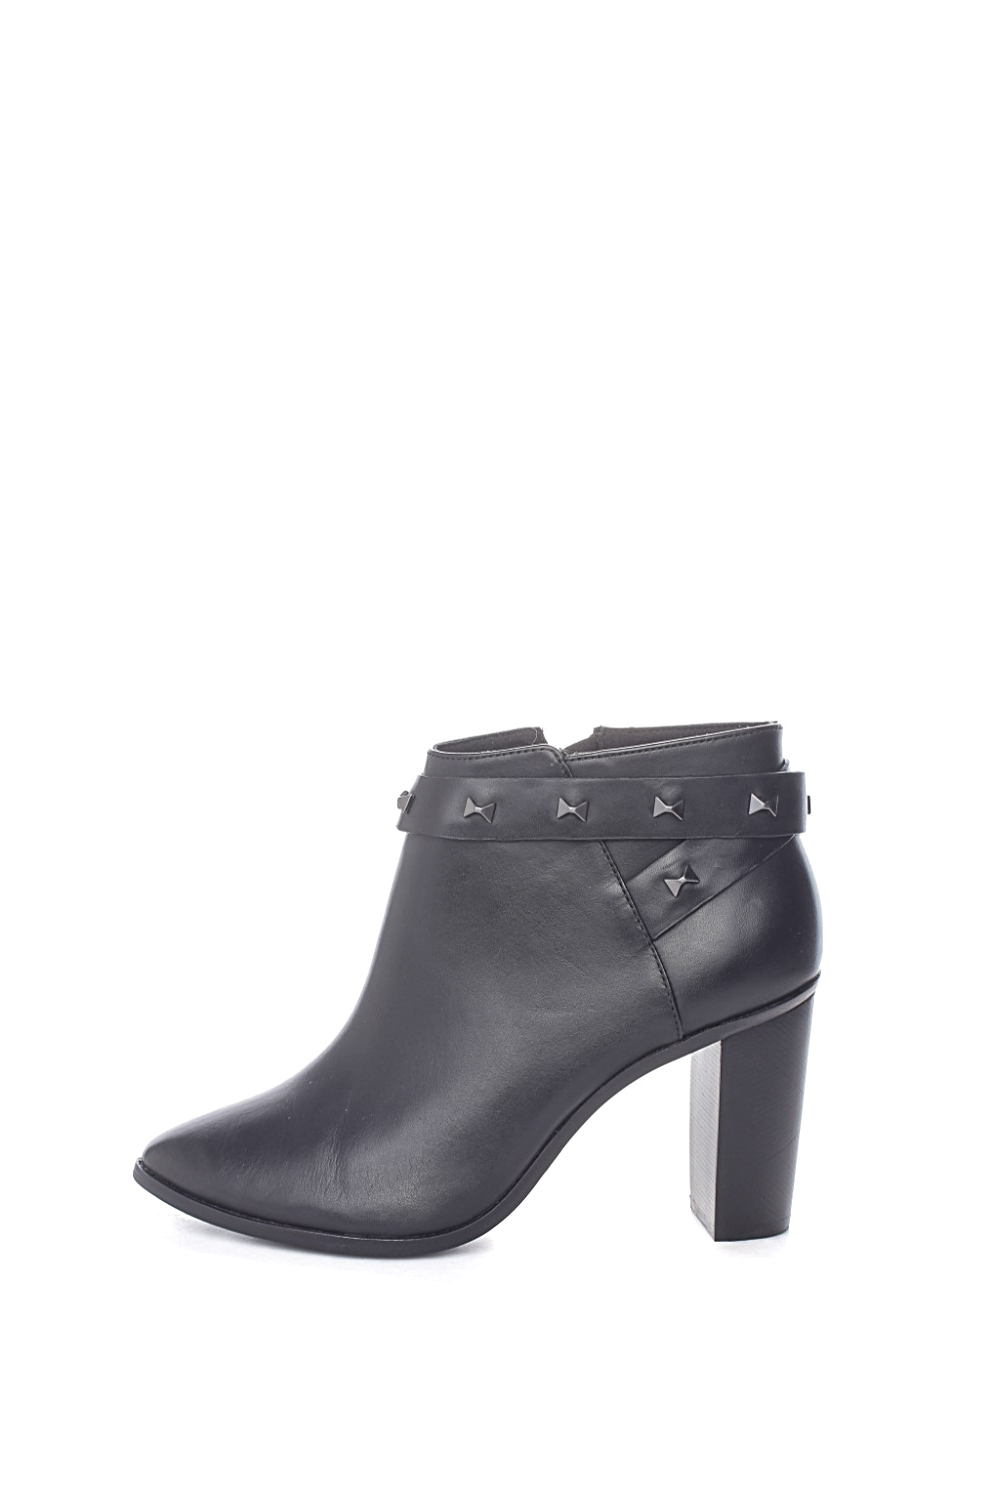 TED BAKER – Γυναικεία δερμάτινα ankle boots TED BAKER DOTTAA μαύρα